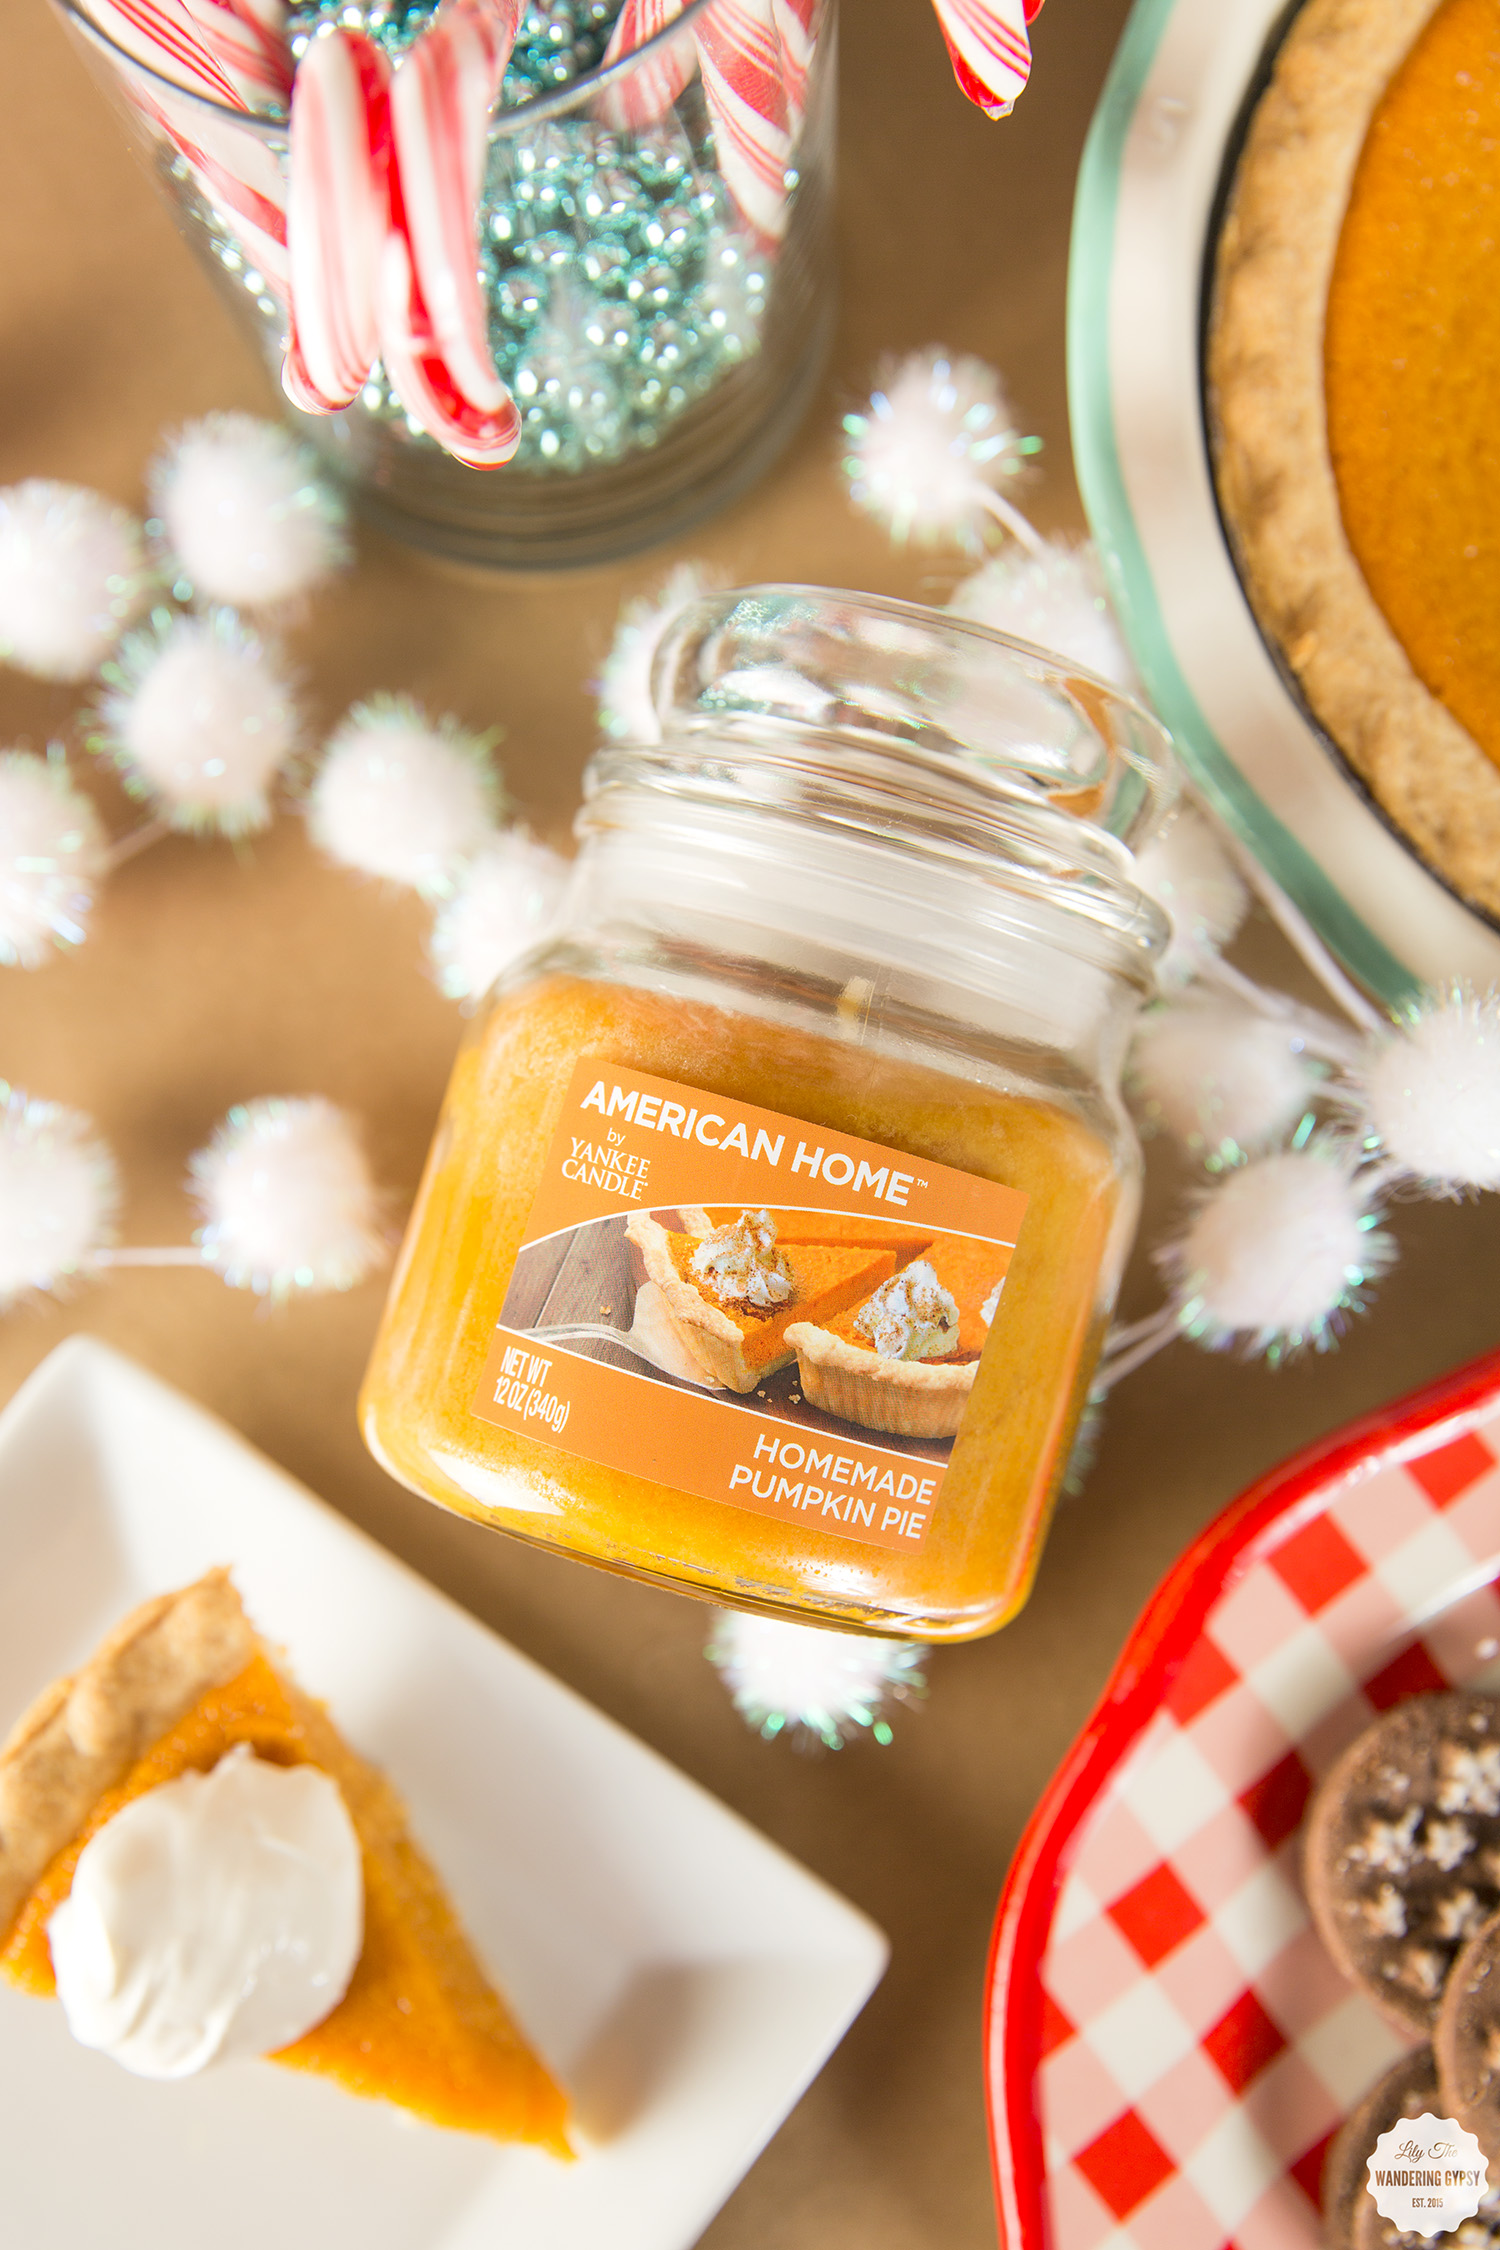 #LoveAmericanHome - Holiday Candles + Party Ideas